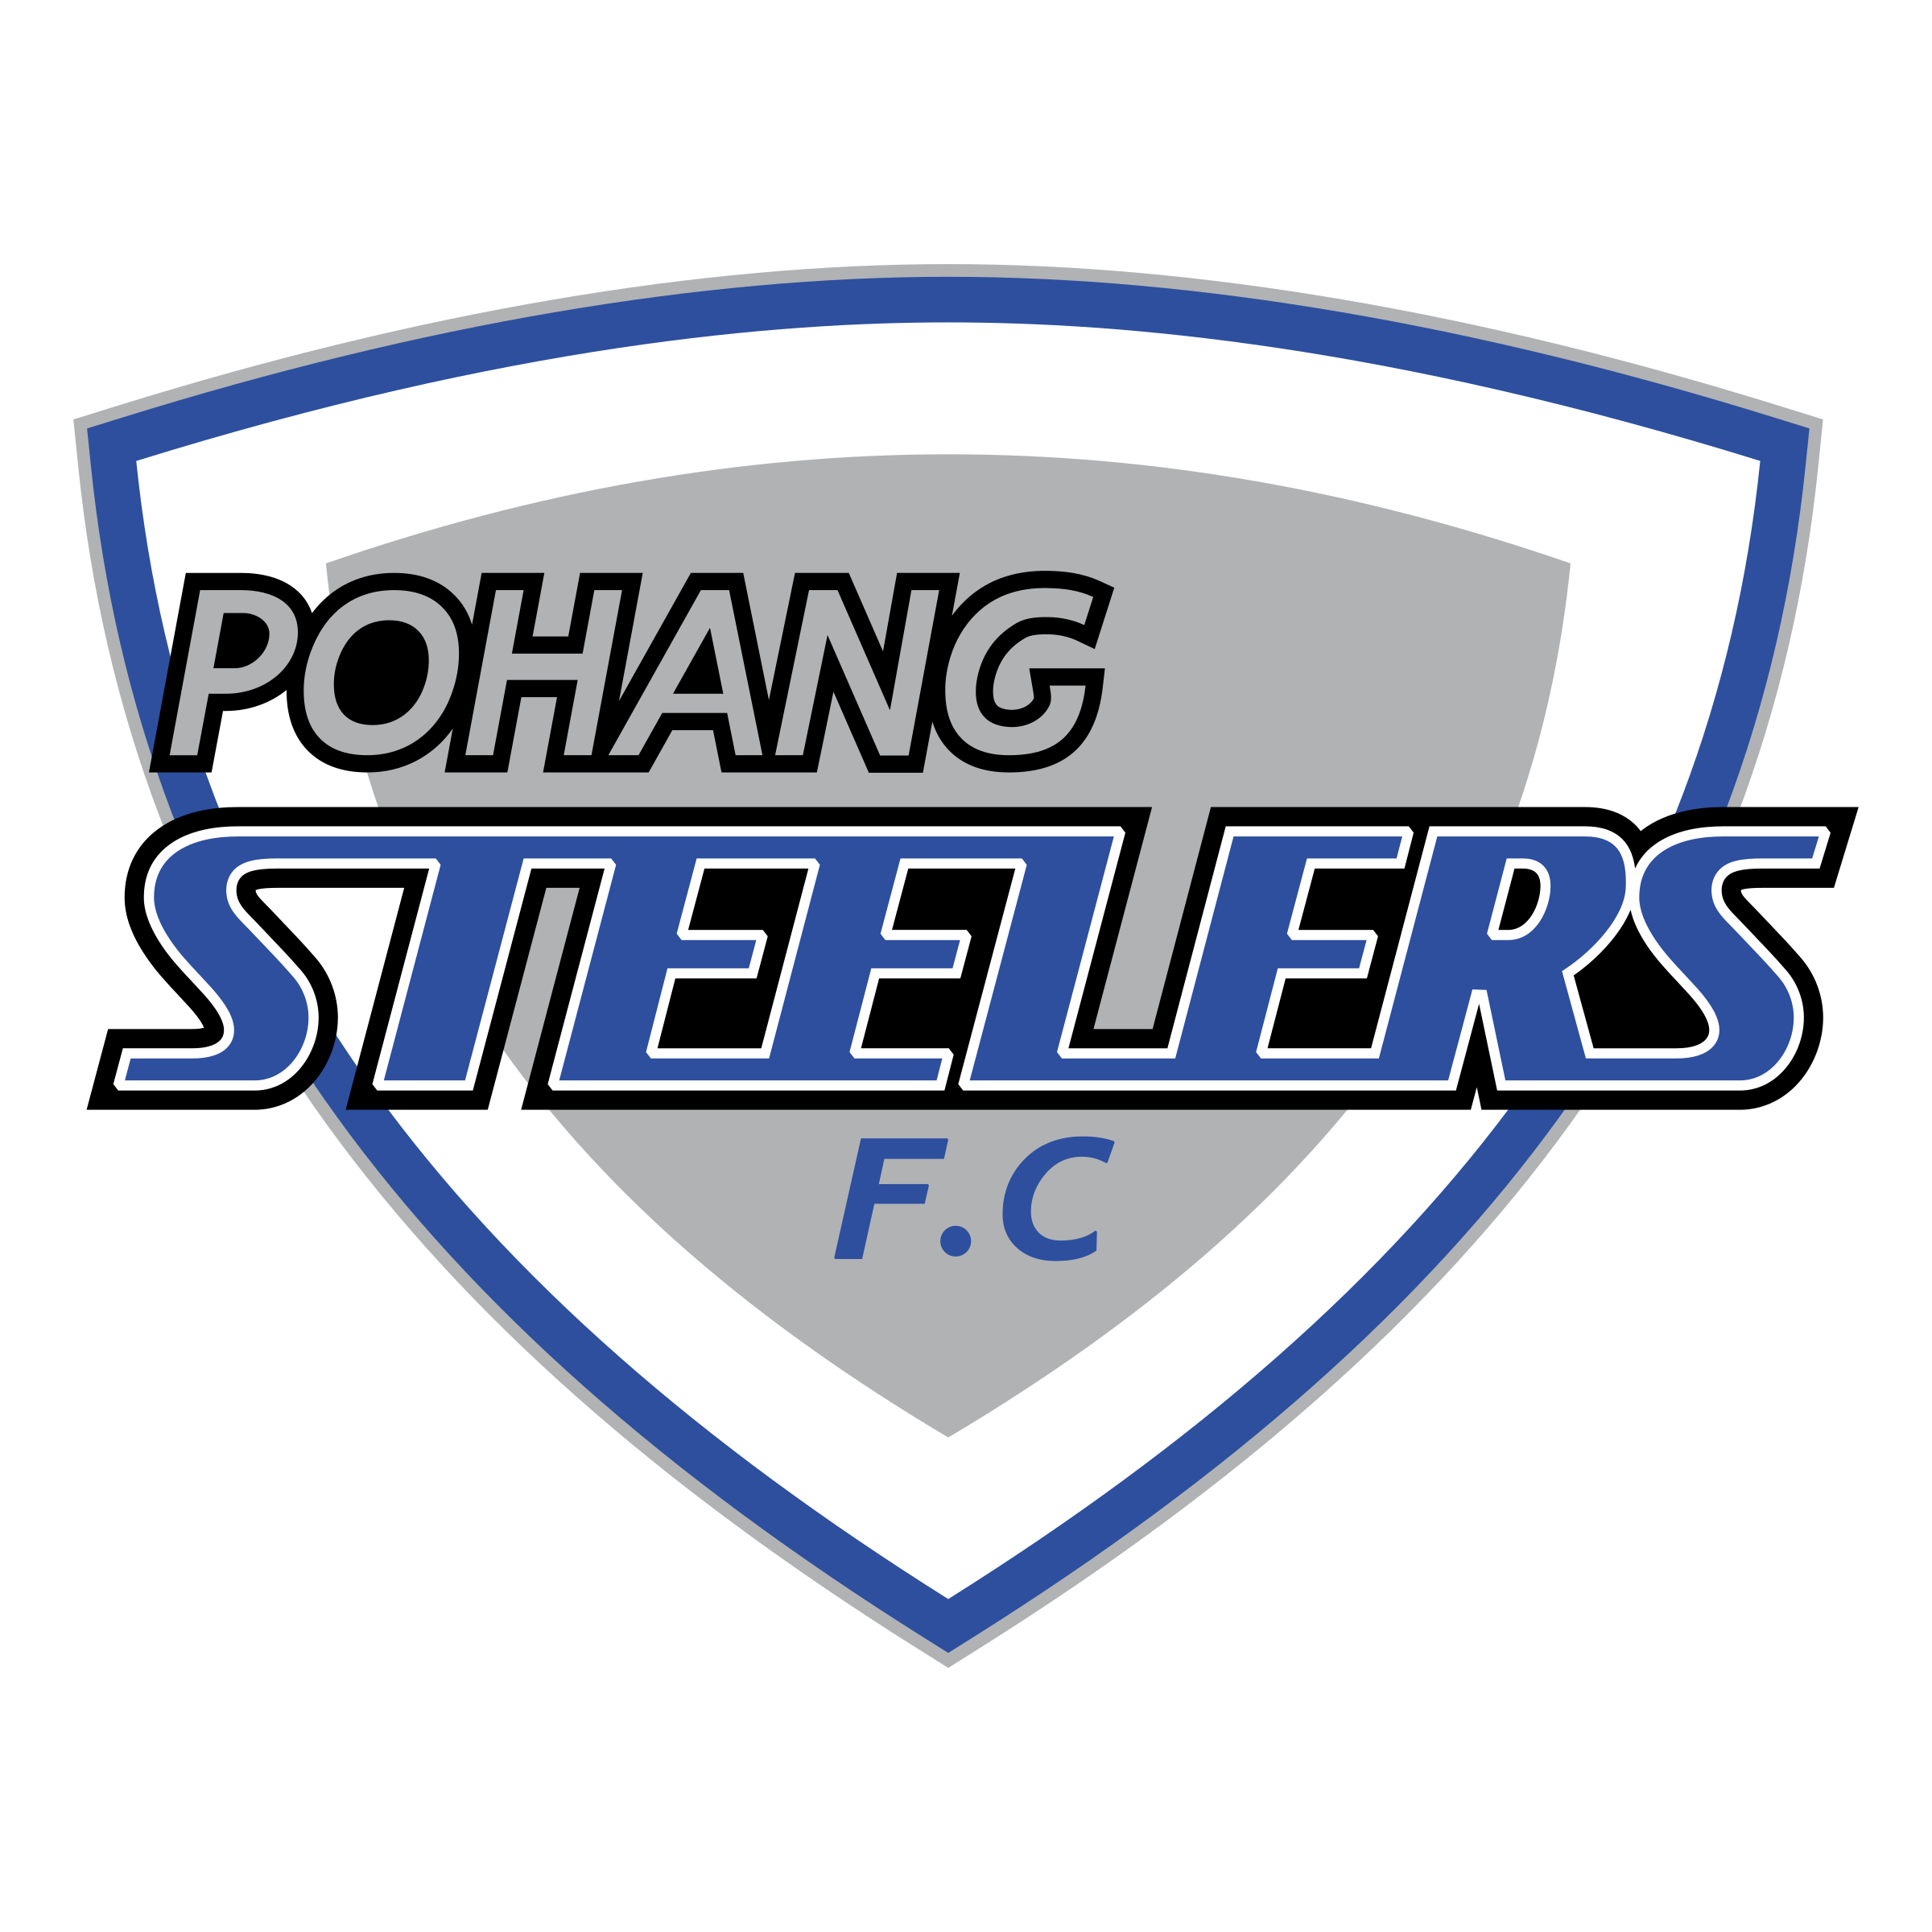 Steelers vector large. Pohang logo png transparent